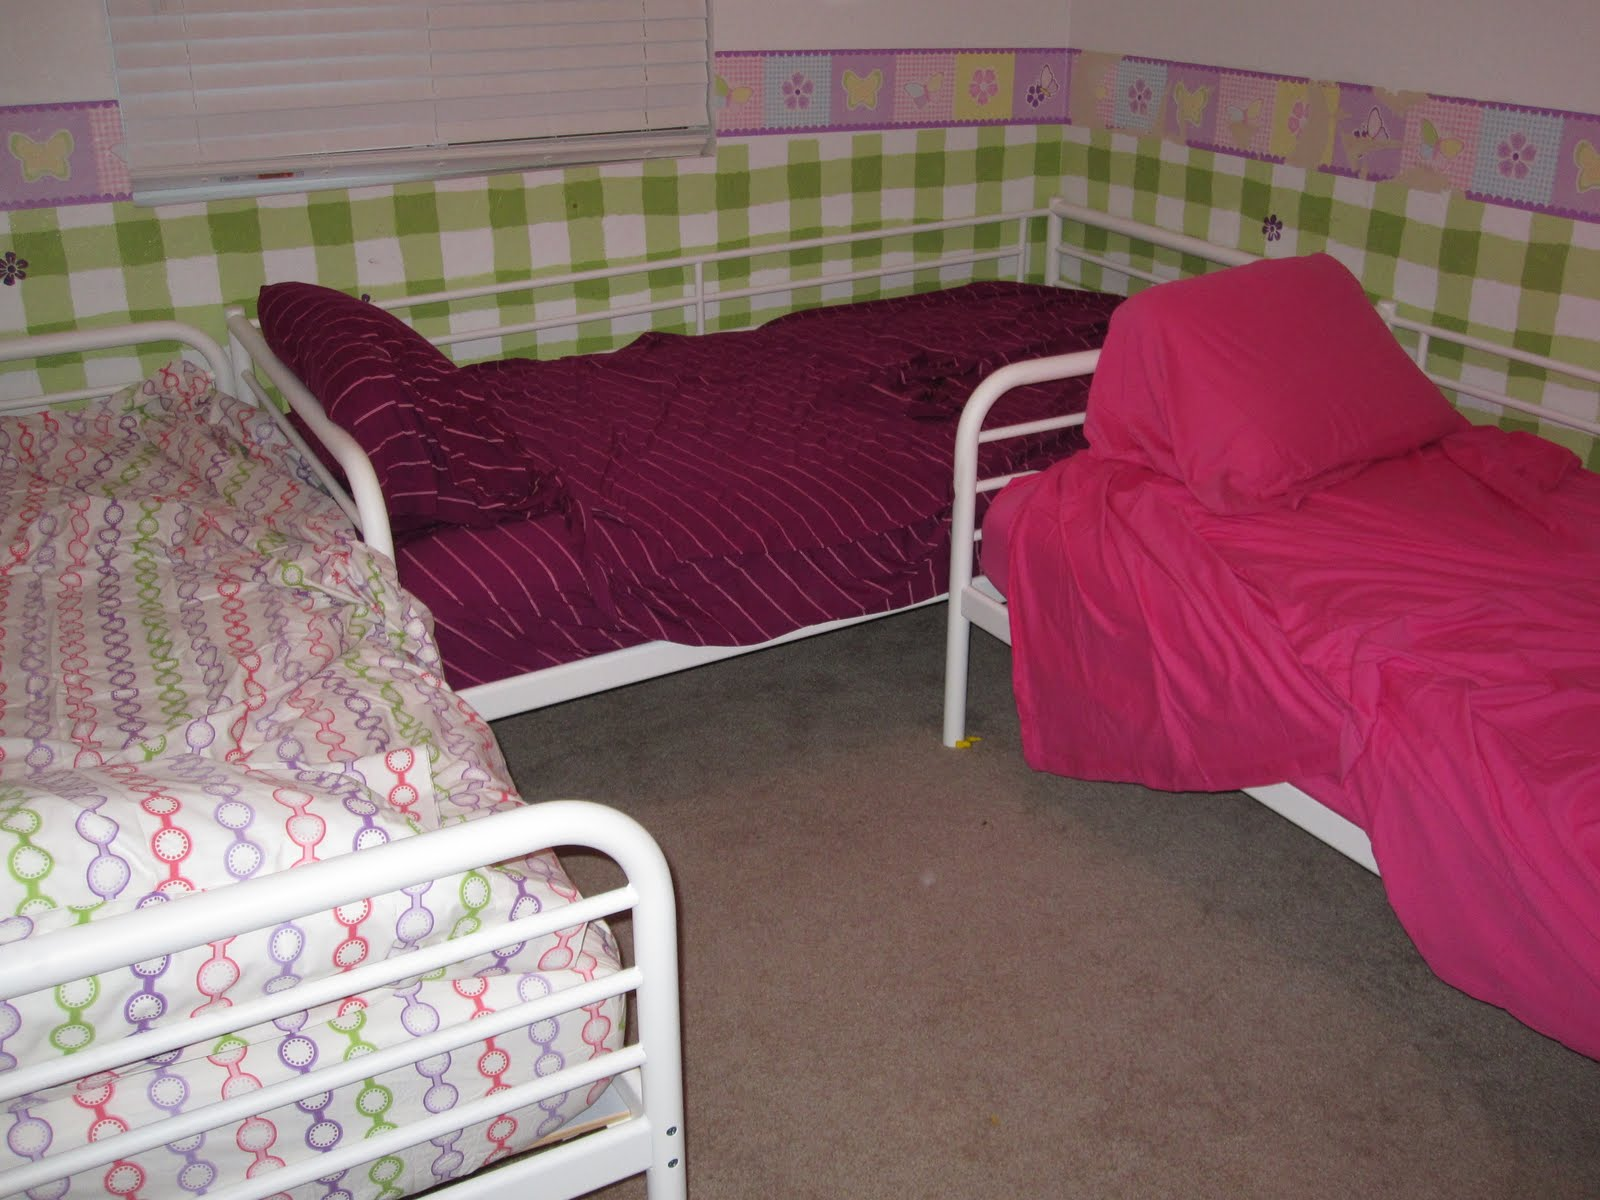 3 Twin Beds In The Space Of 1 3 Twin Beds In A 10x10 Room No Bunk Beds Babycenter